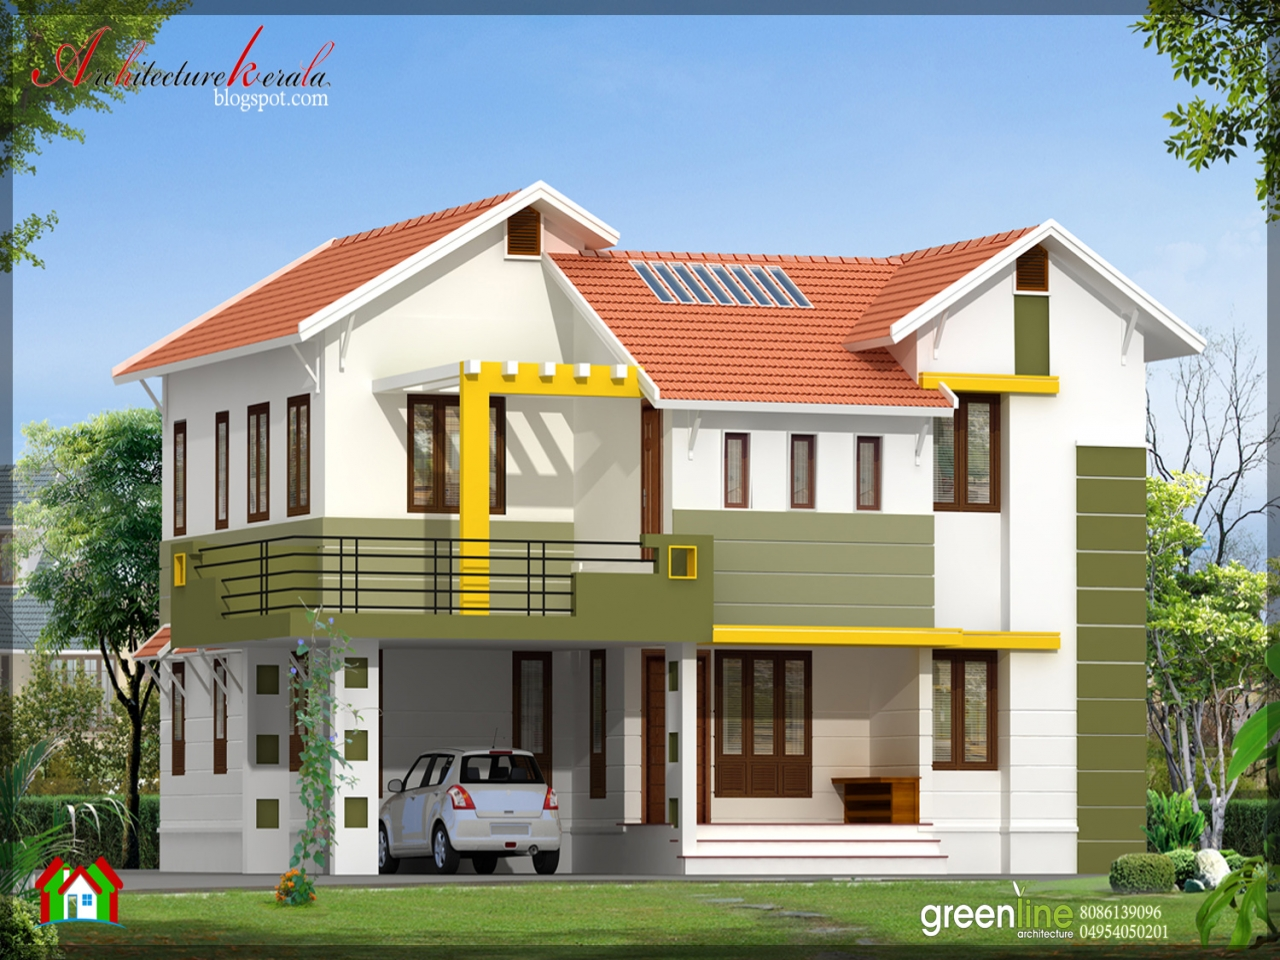 Simple modern house designs simple house design in india for Best simple home design